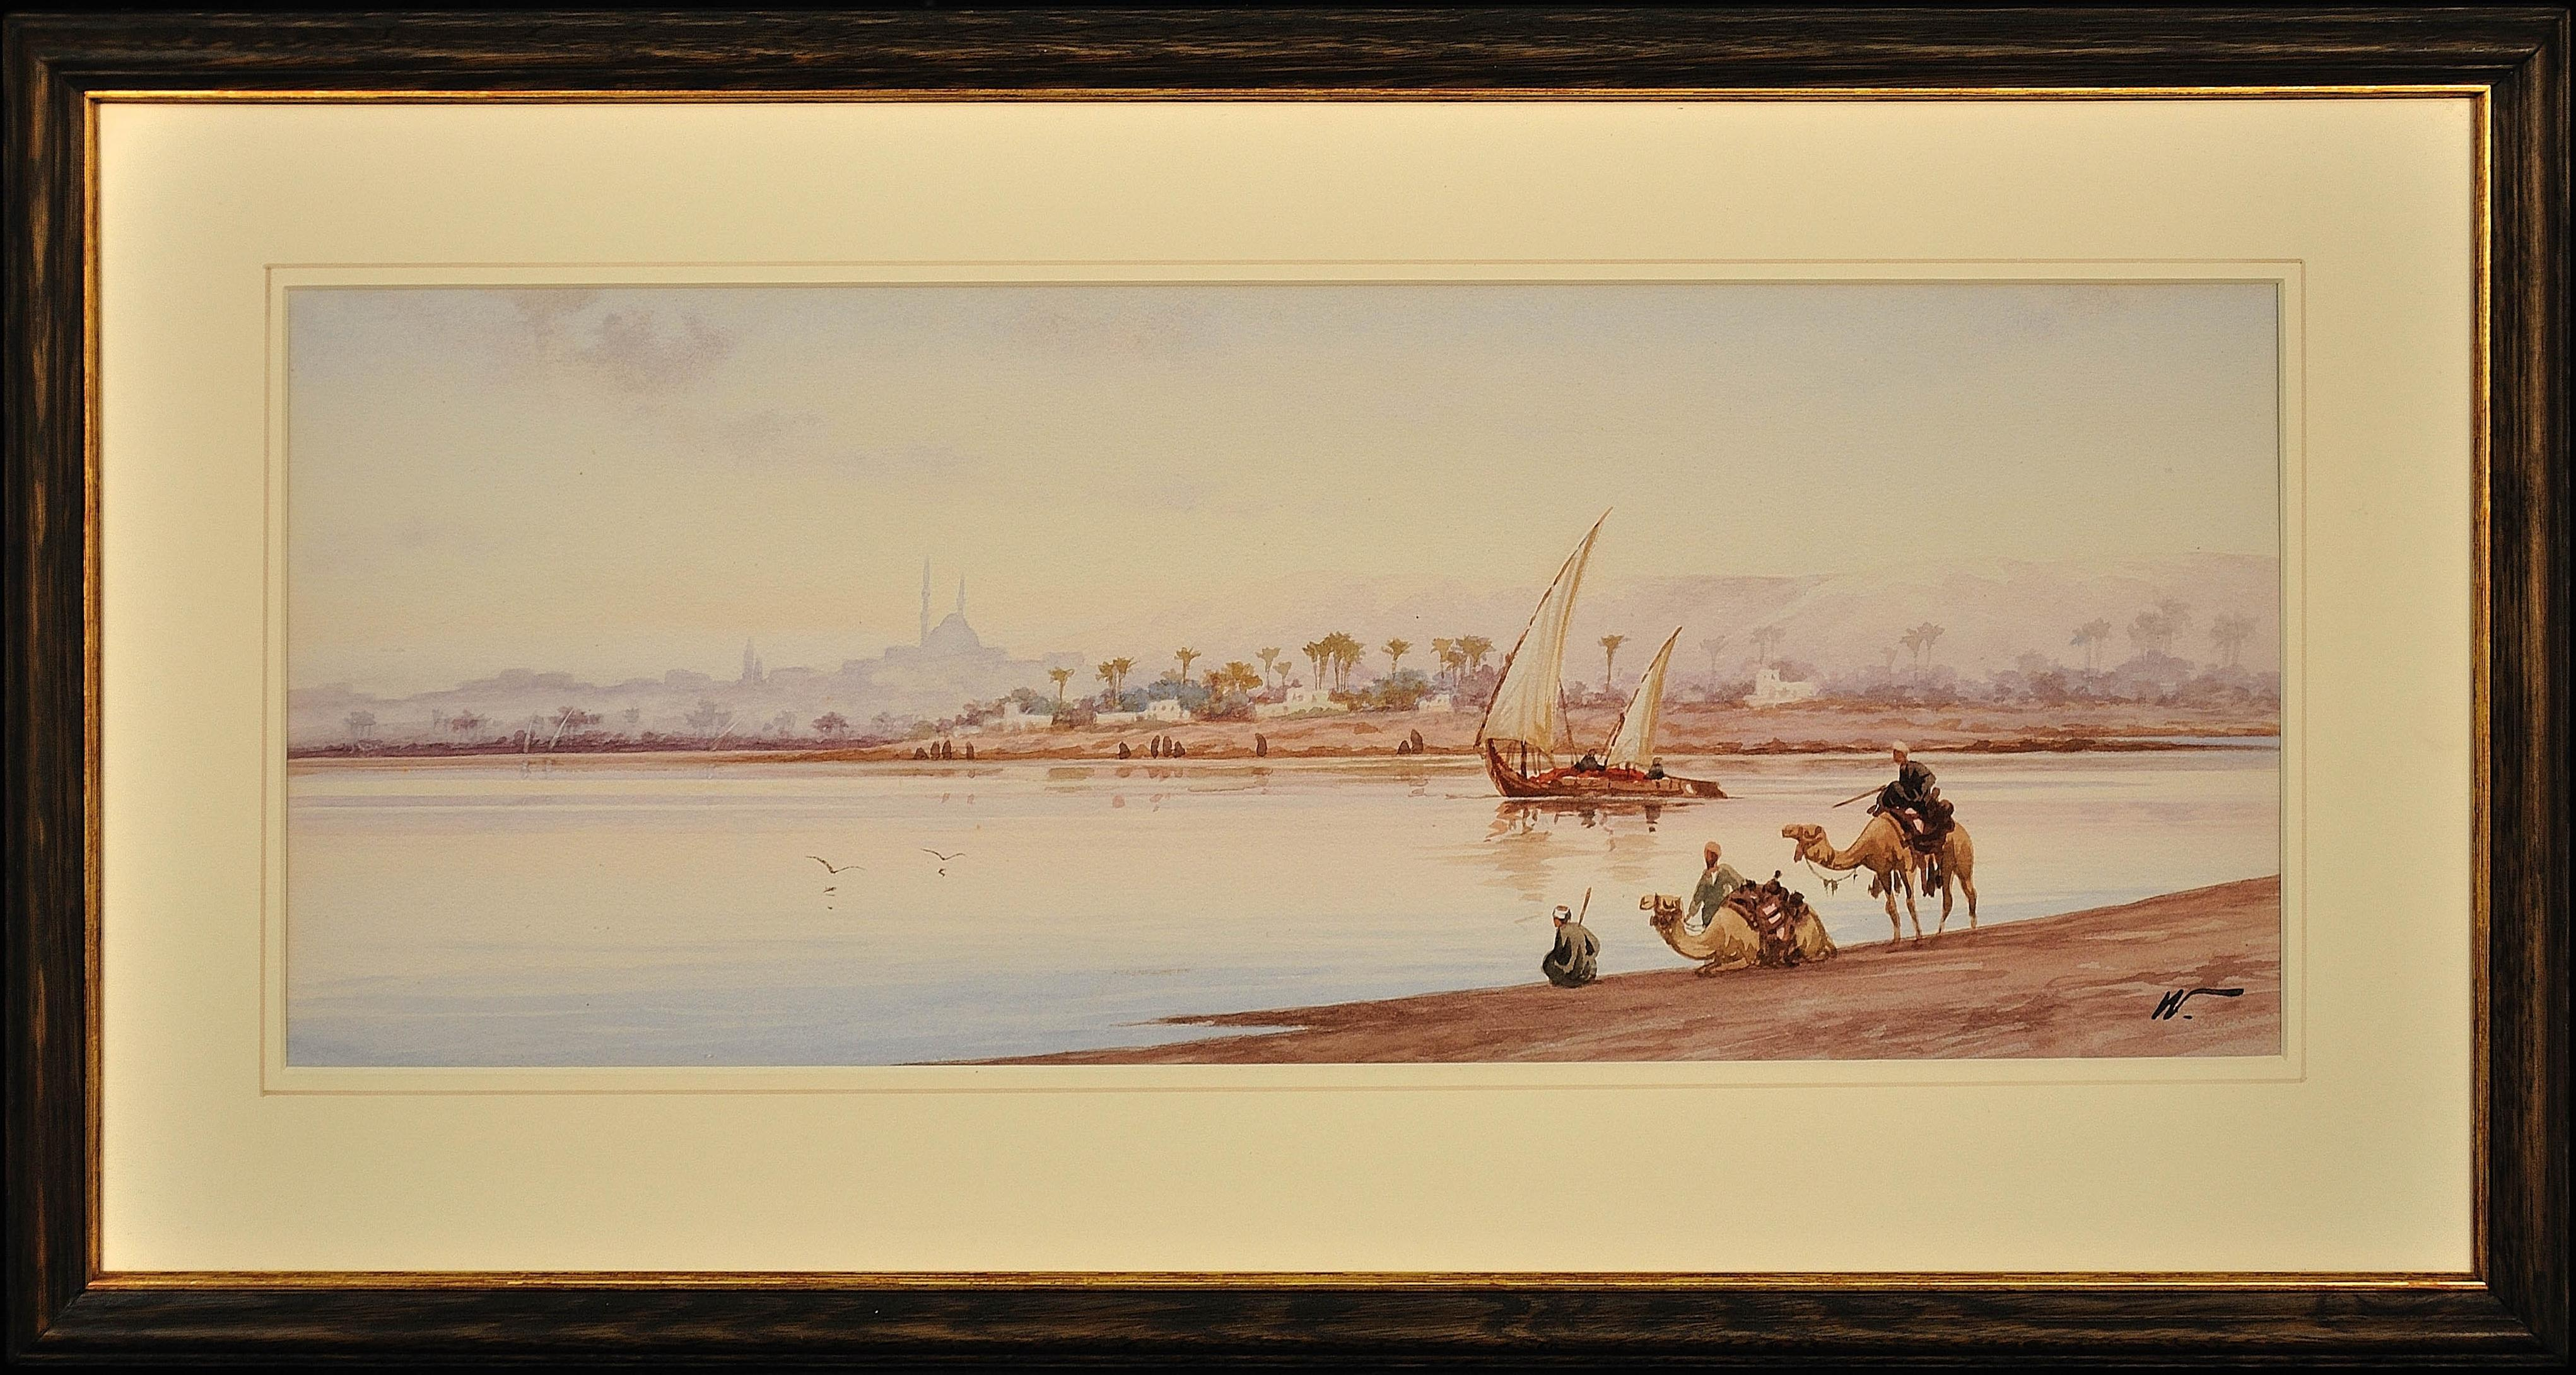 River Nile Feluccas and Camels. Egypt. American Orientalist Watercolor. Mosque.